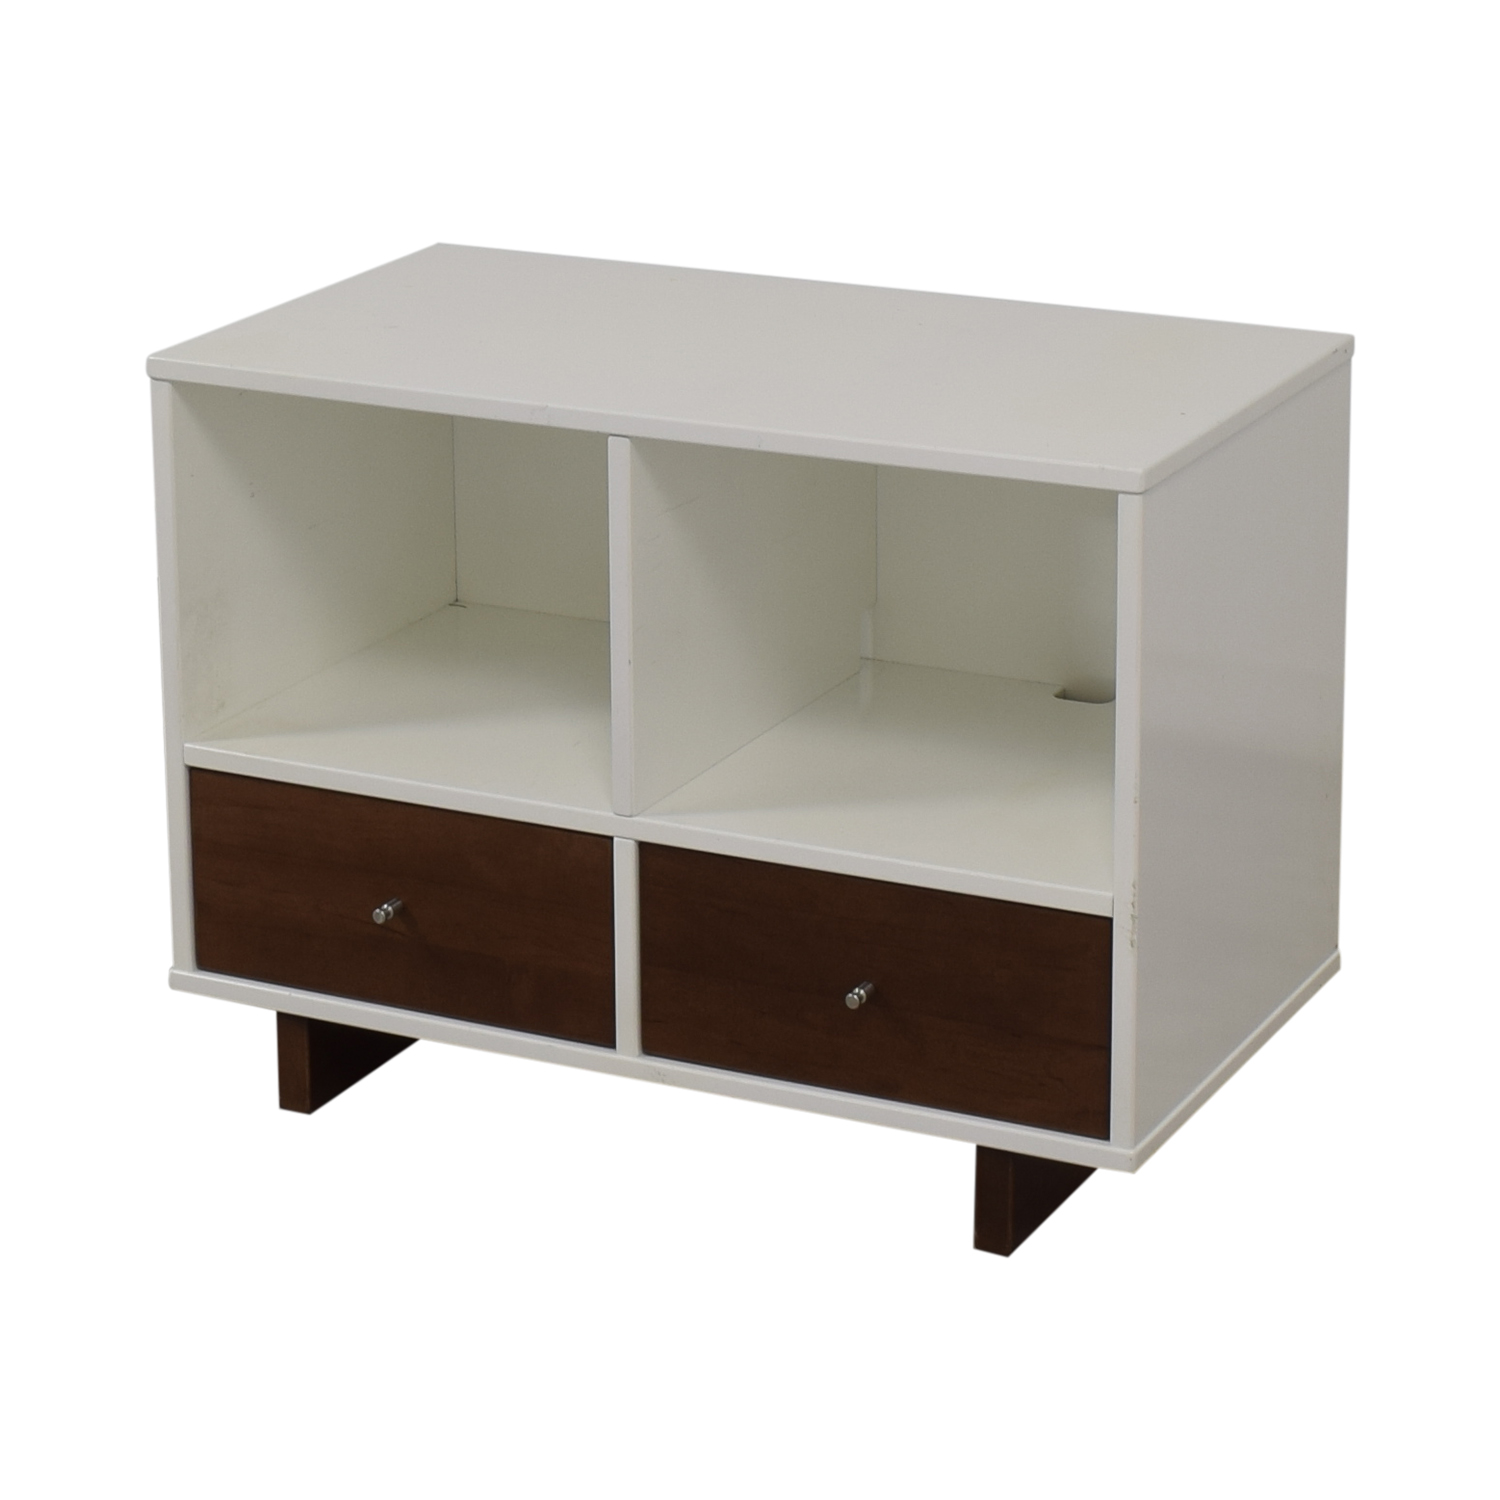 Design Within Reach Design Within Reach Storage Shelves with Drawers price